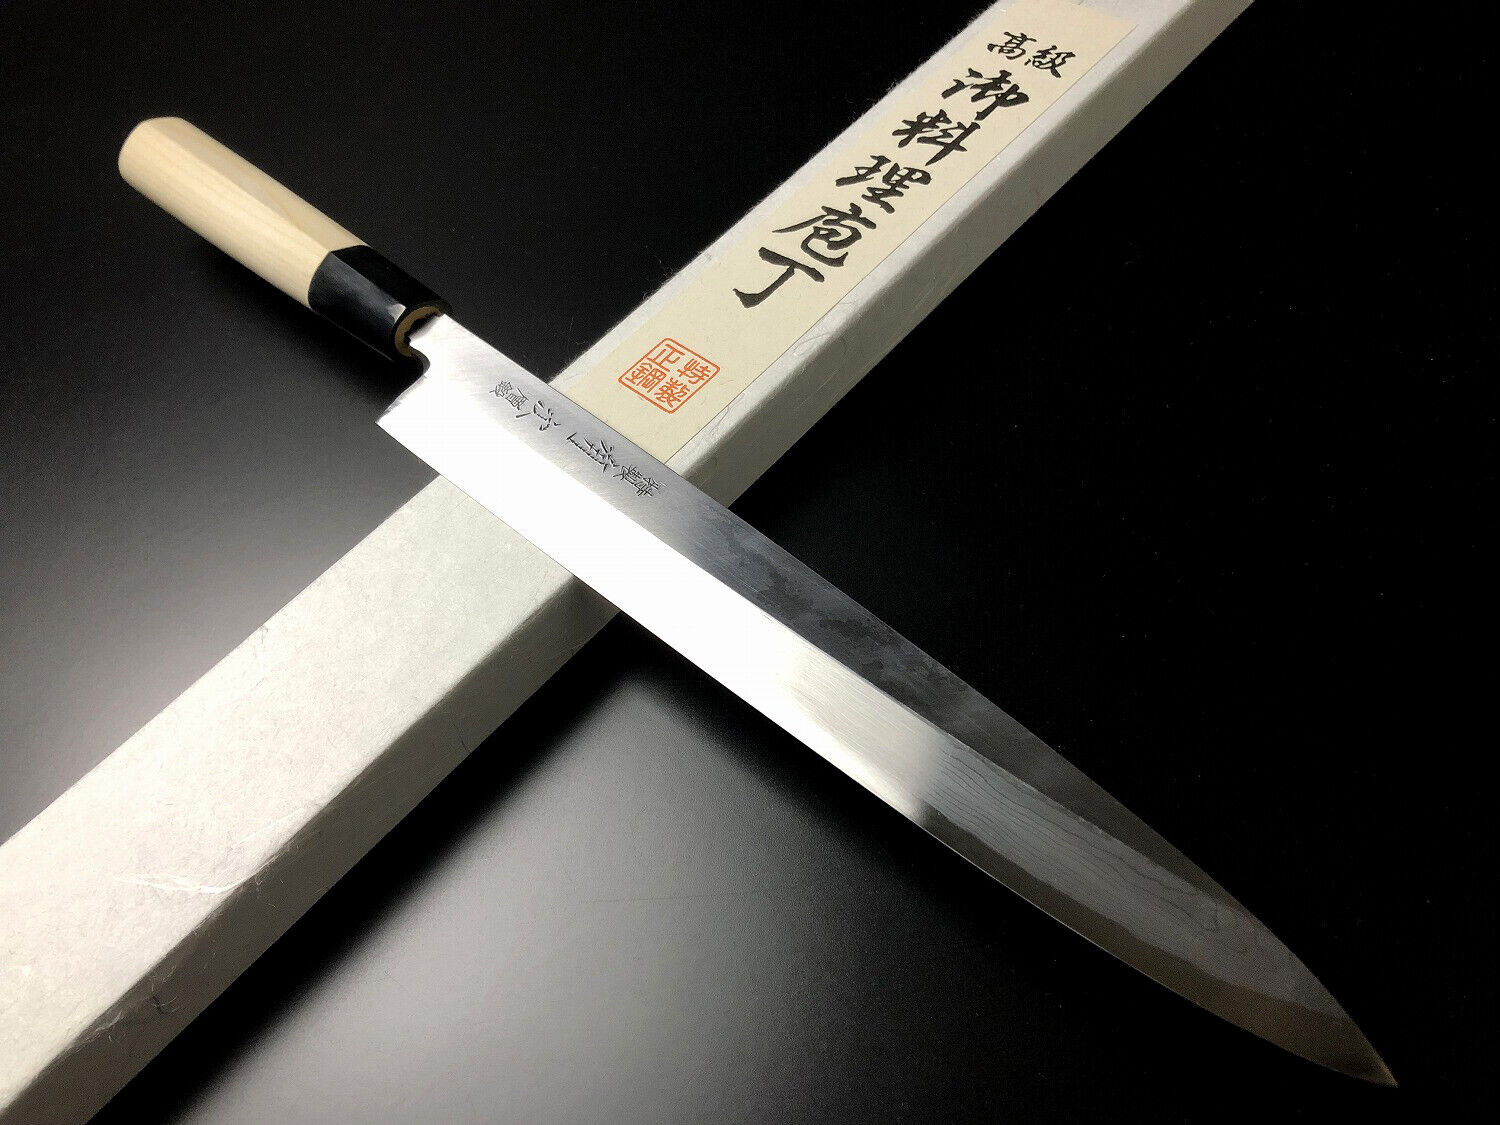 Japanese Chef's Knife ARITSUGU Blau Steel Yanagi Sashimi 240mm 9.44 9.44 9.44  AT004 e52ef5